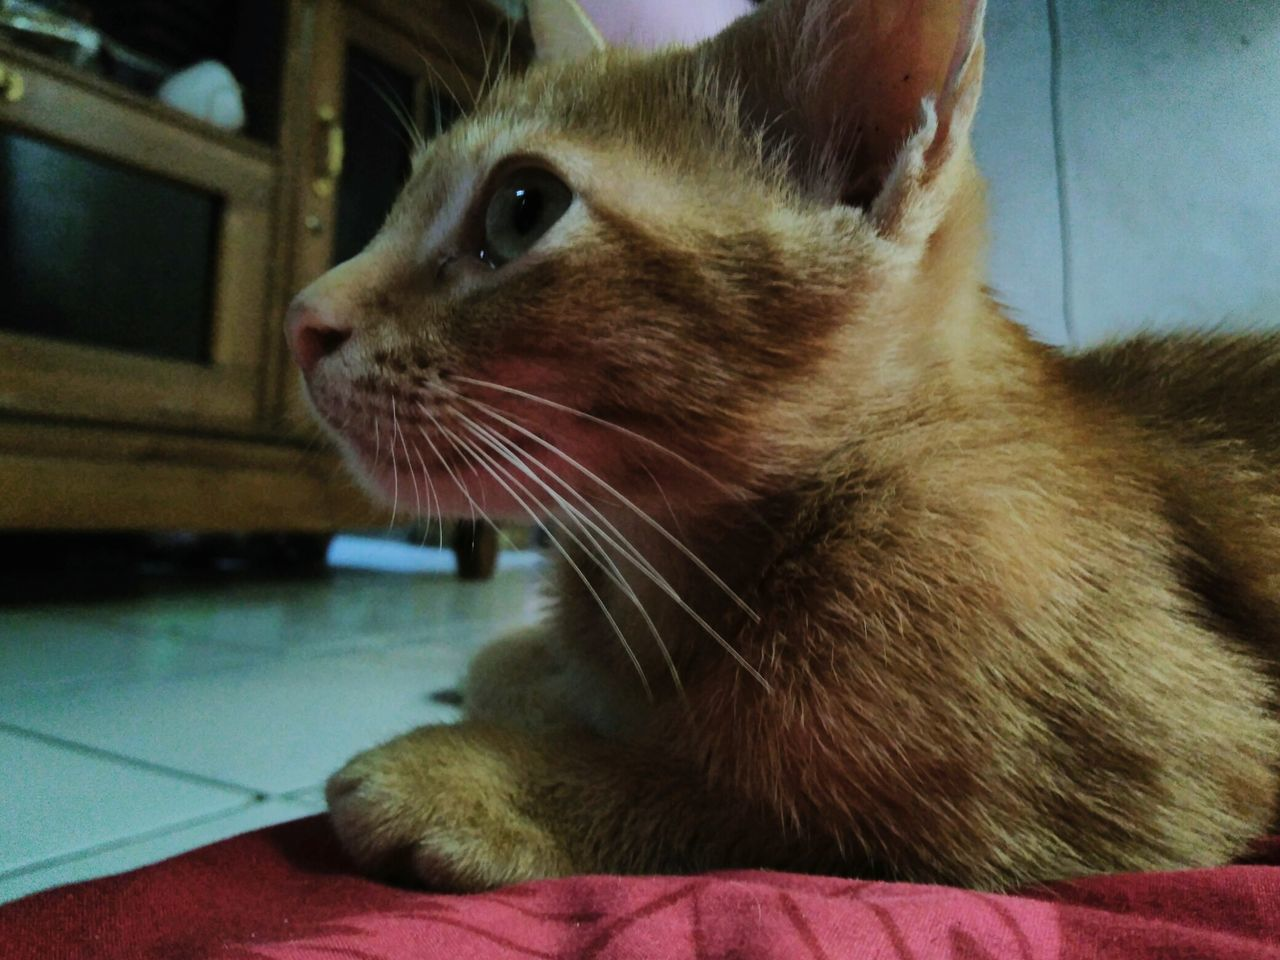 domestic cat, pets, domestic animals, one animal, animal themes, mammal, feline, whisker, cat, indoors, home interior, close-up, no people, sitting, portrait, ginger cat, day